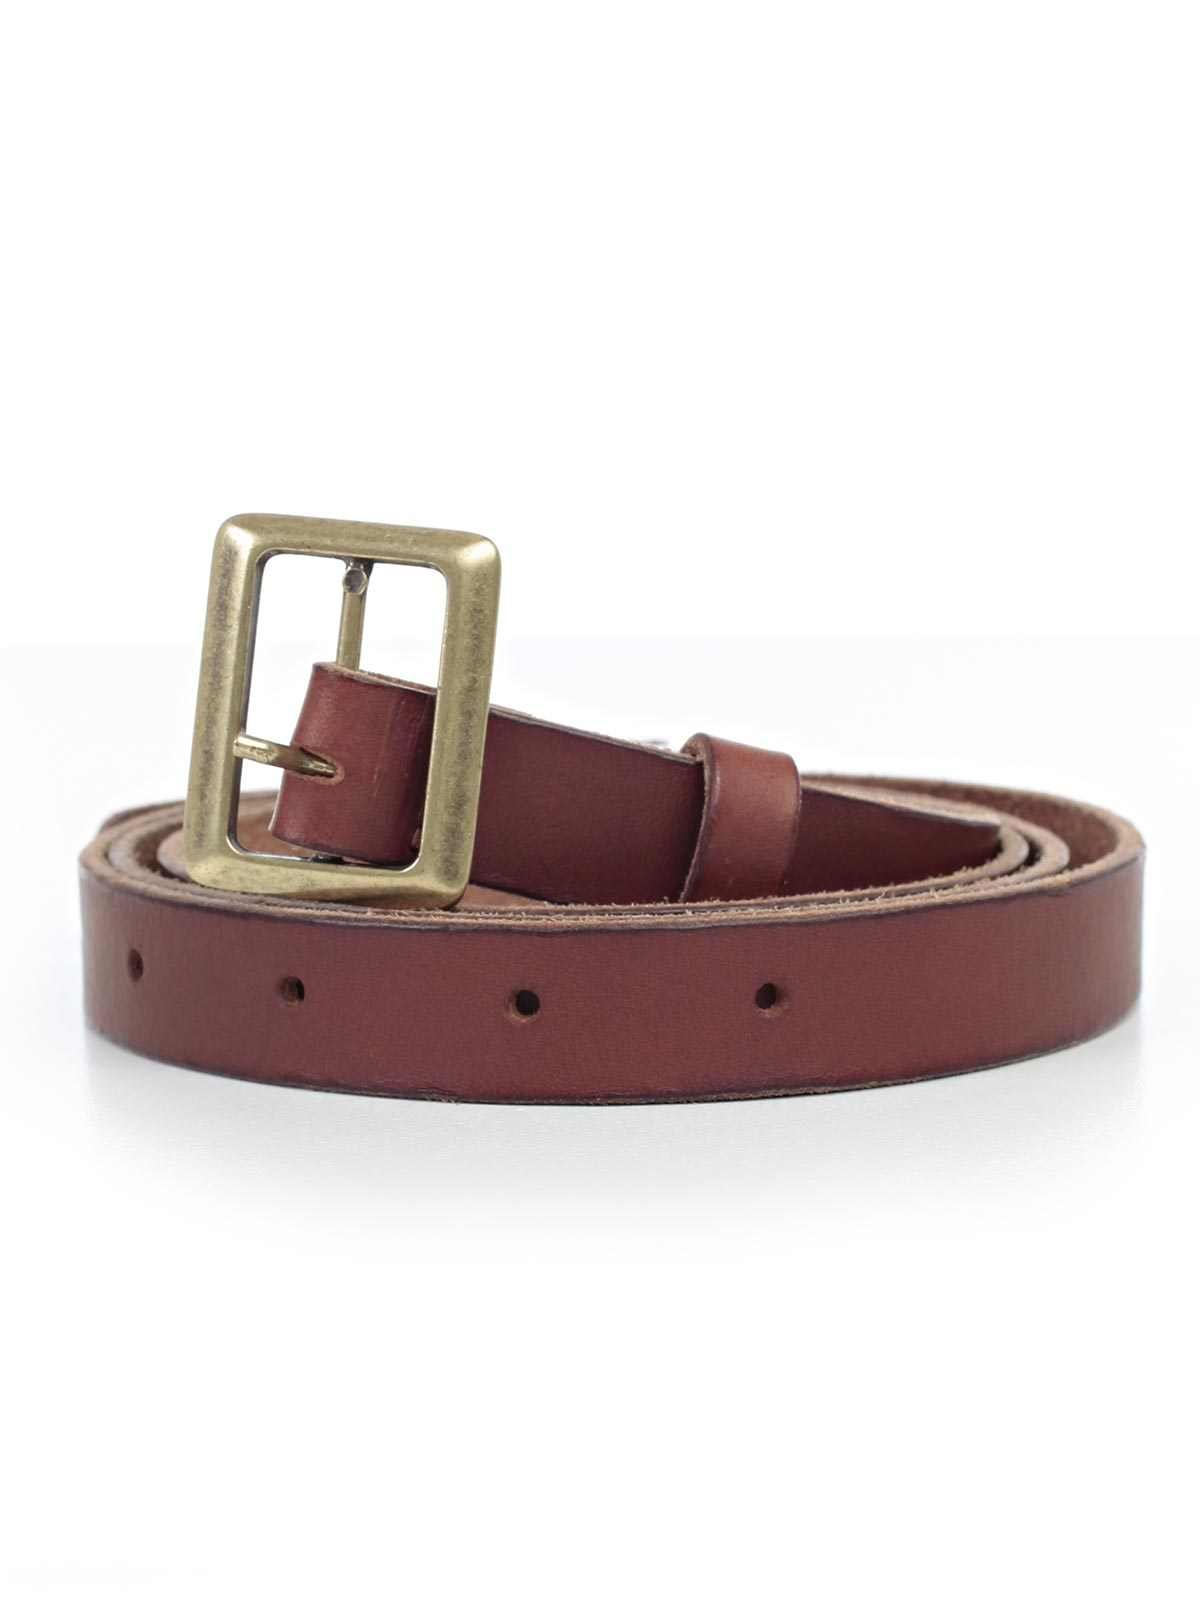 Picture of FORTE FORTE BELT CINTURA SOTTILE